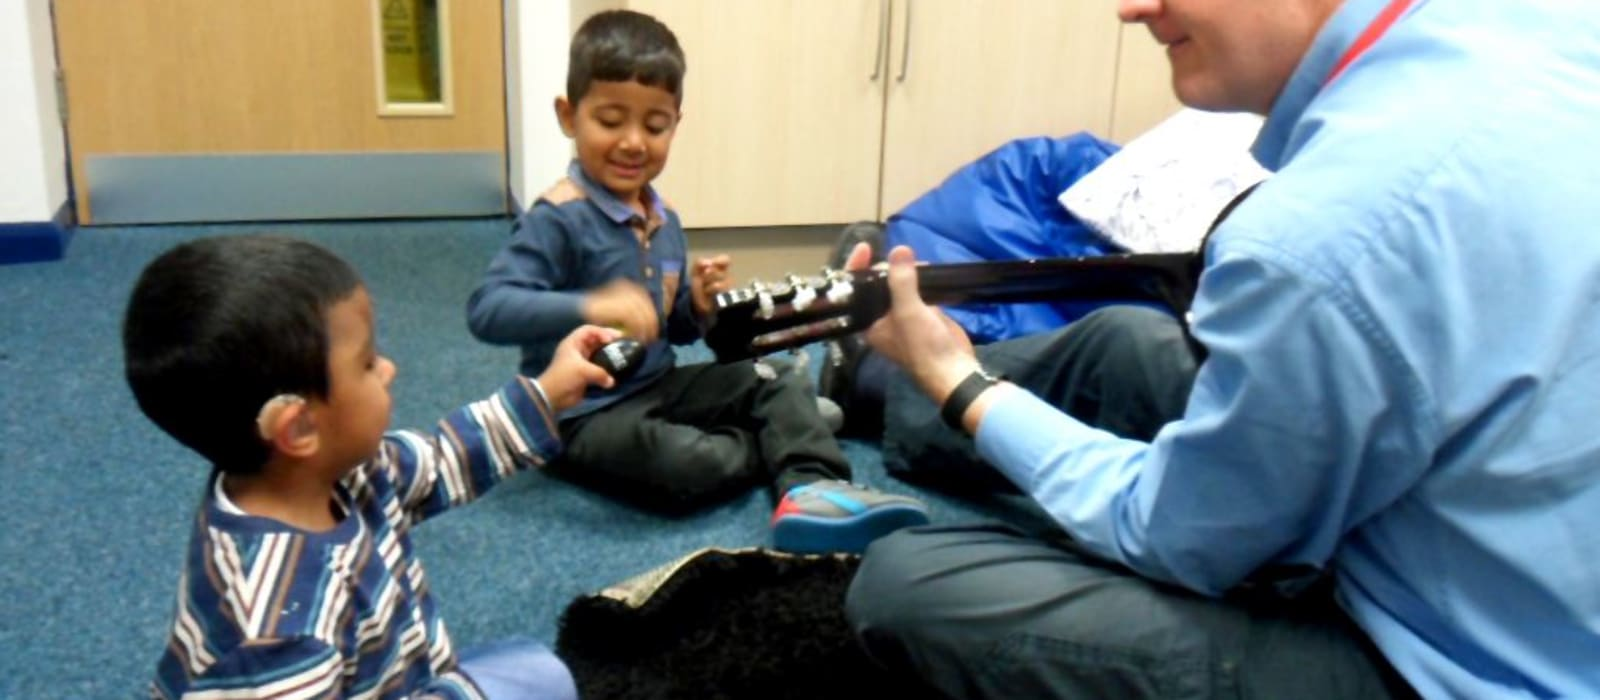 Andrew Cleaton playing the guitar with Habib, who is hearing impaired